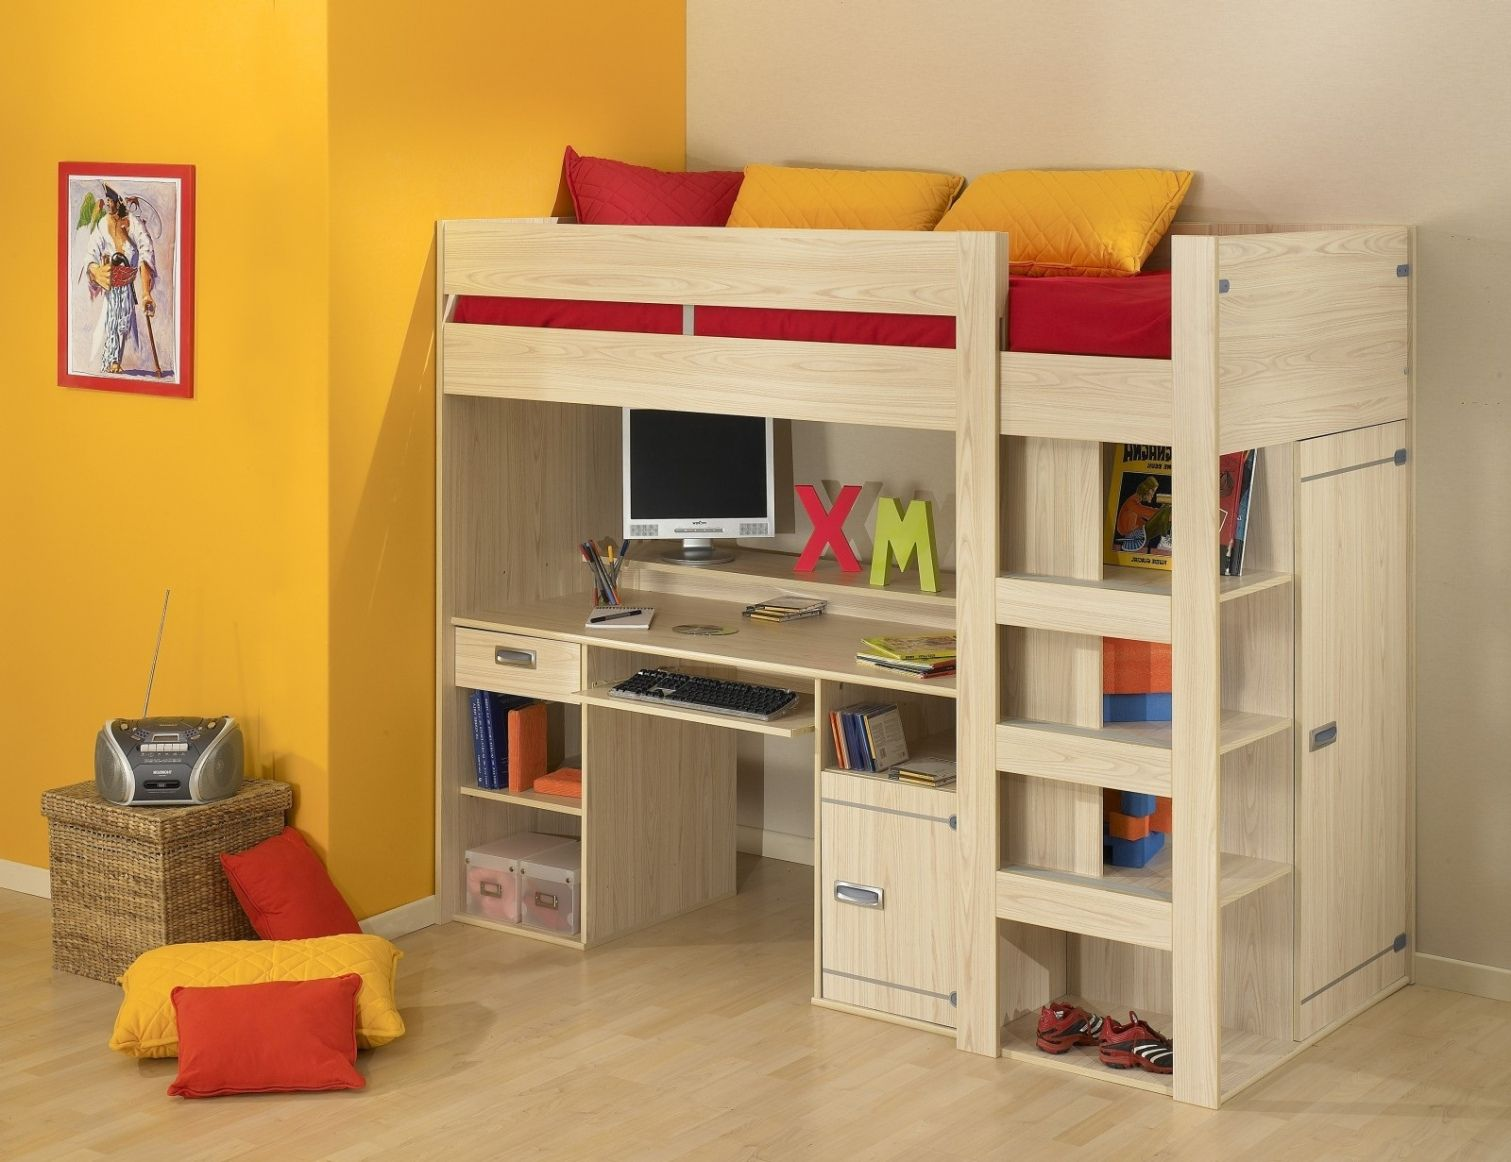 Loft Bunk Bed with Desk Underneath - Best Interior House Paint Check more  at http: